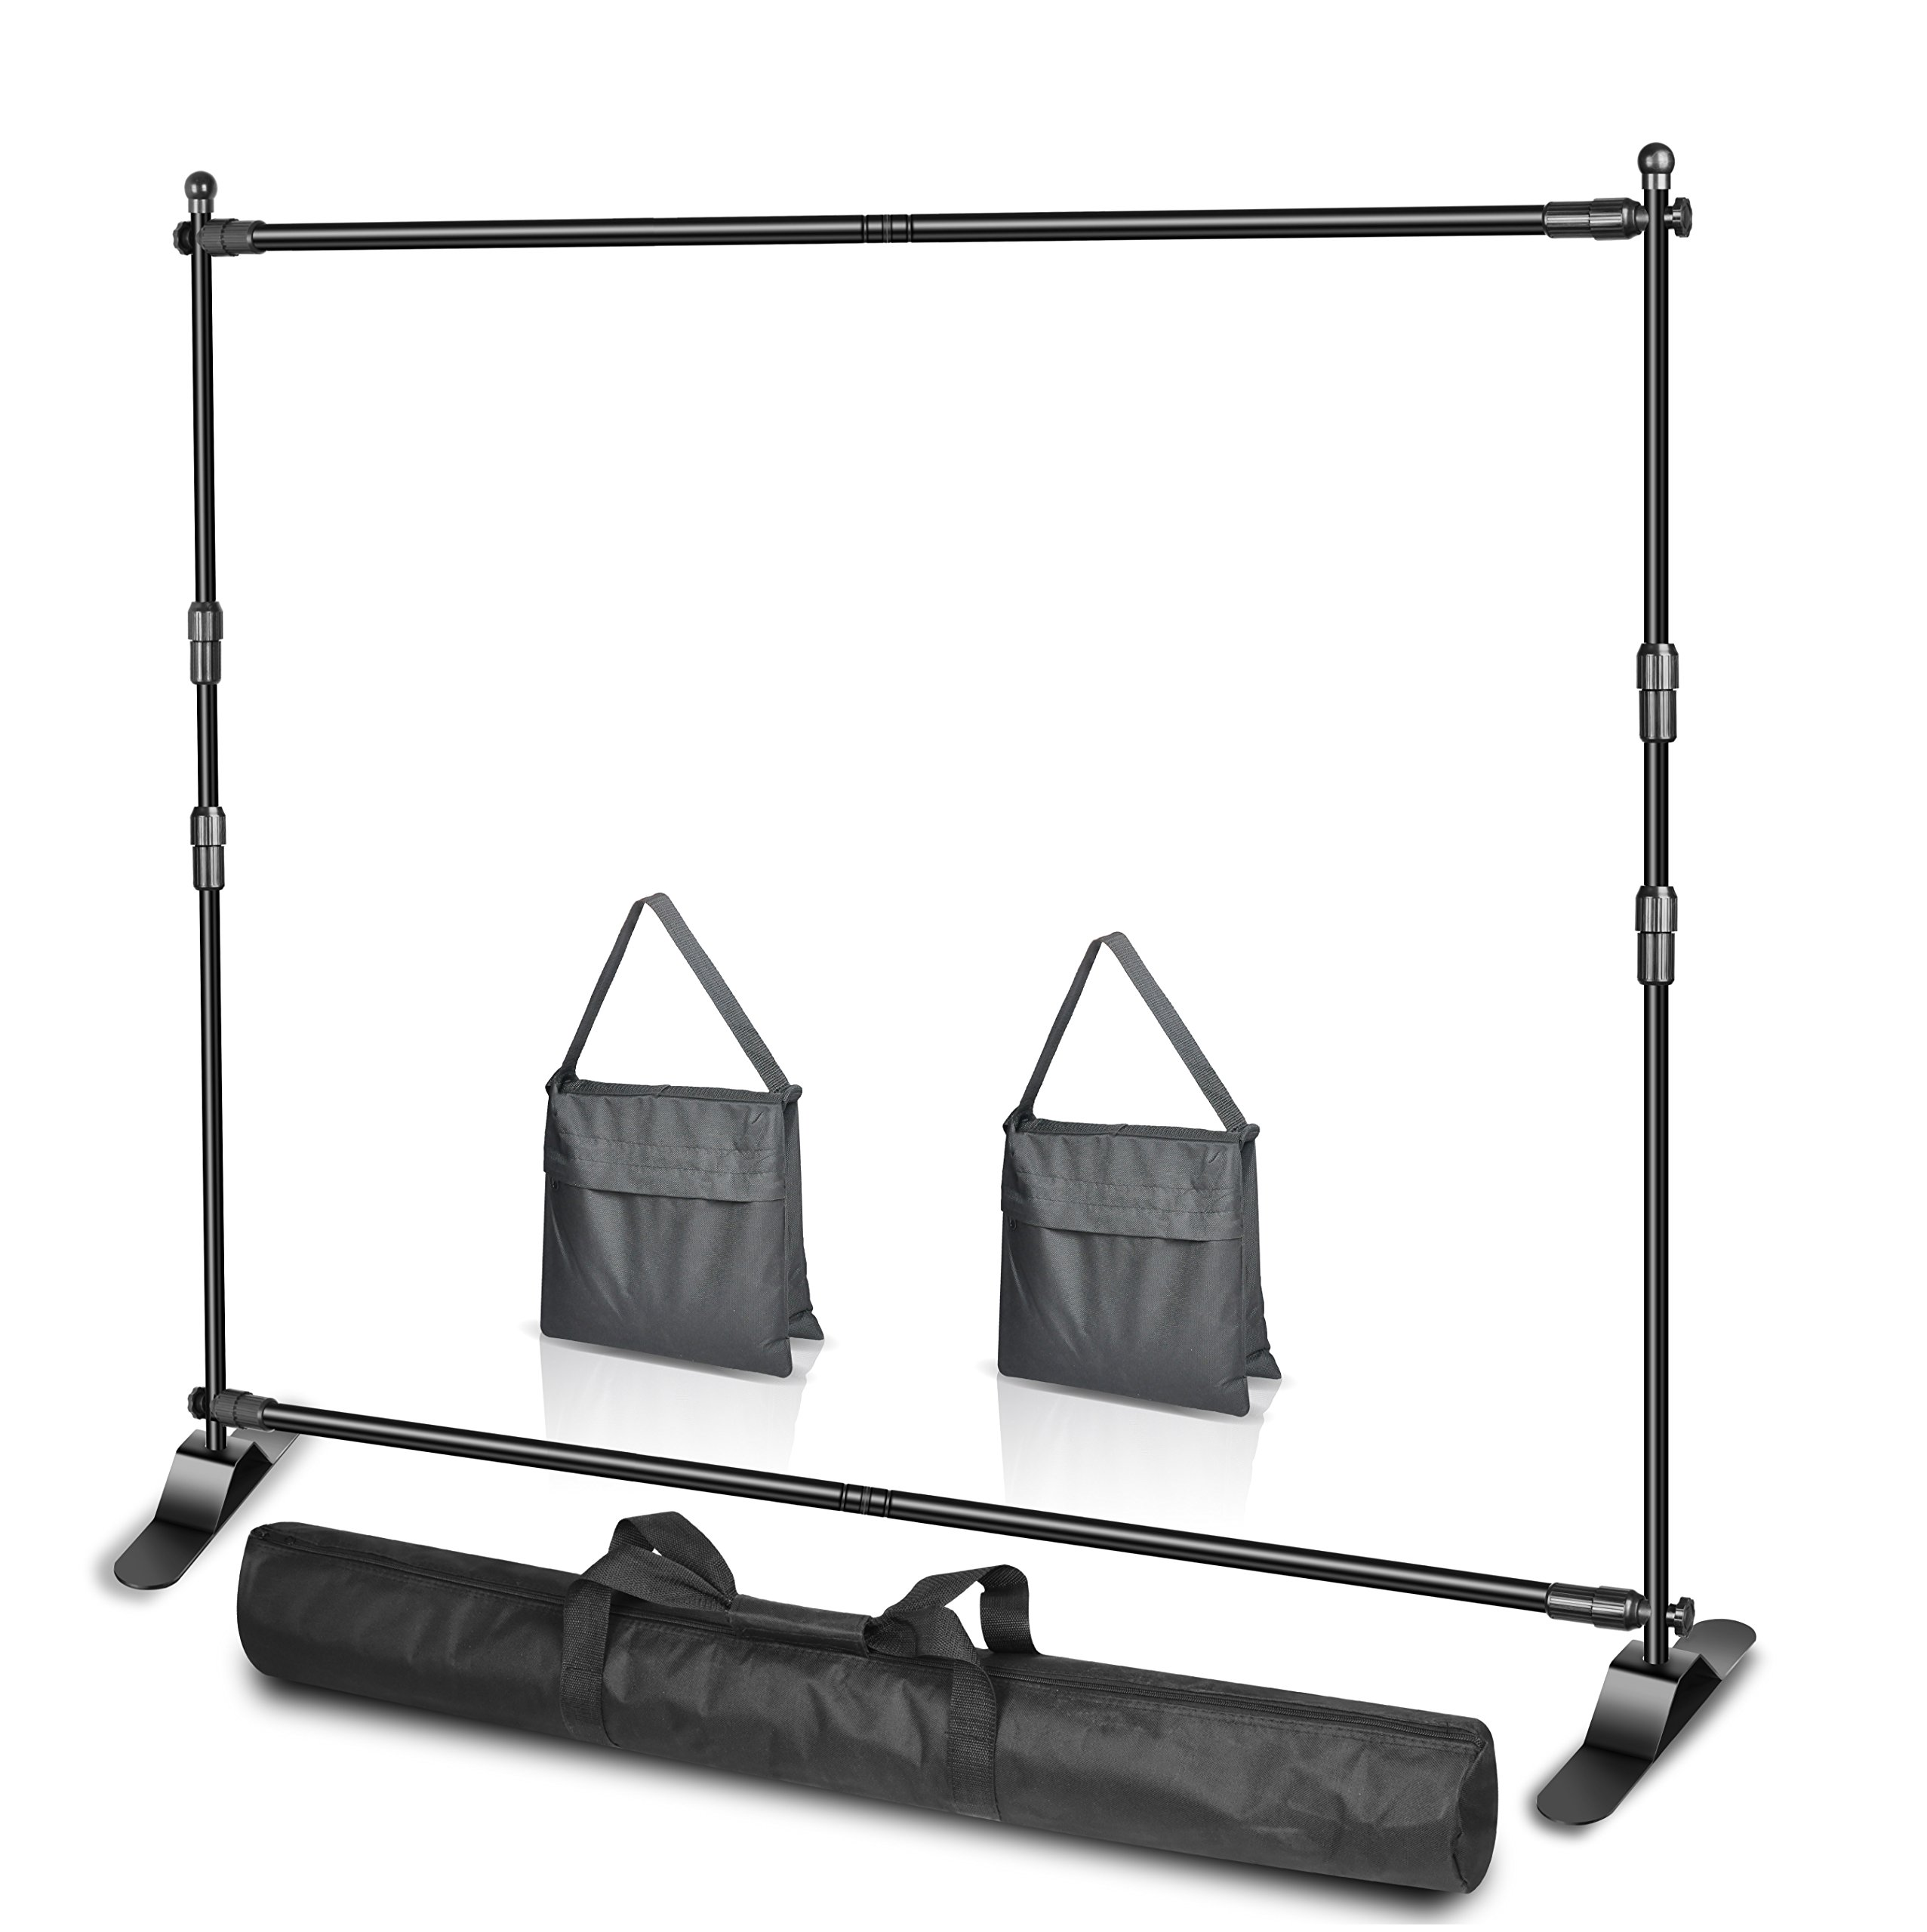 Emart 10 x 8ft (W X H) Photo Backdrop Banner Stand - Adjustable Telescopic Tube Trade Show Display Stand, Step and Repeat Frame Stand for Professional Photography Booth Background Stand Kit by EMART